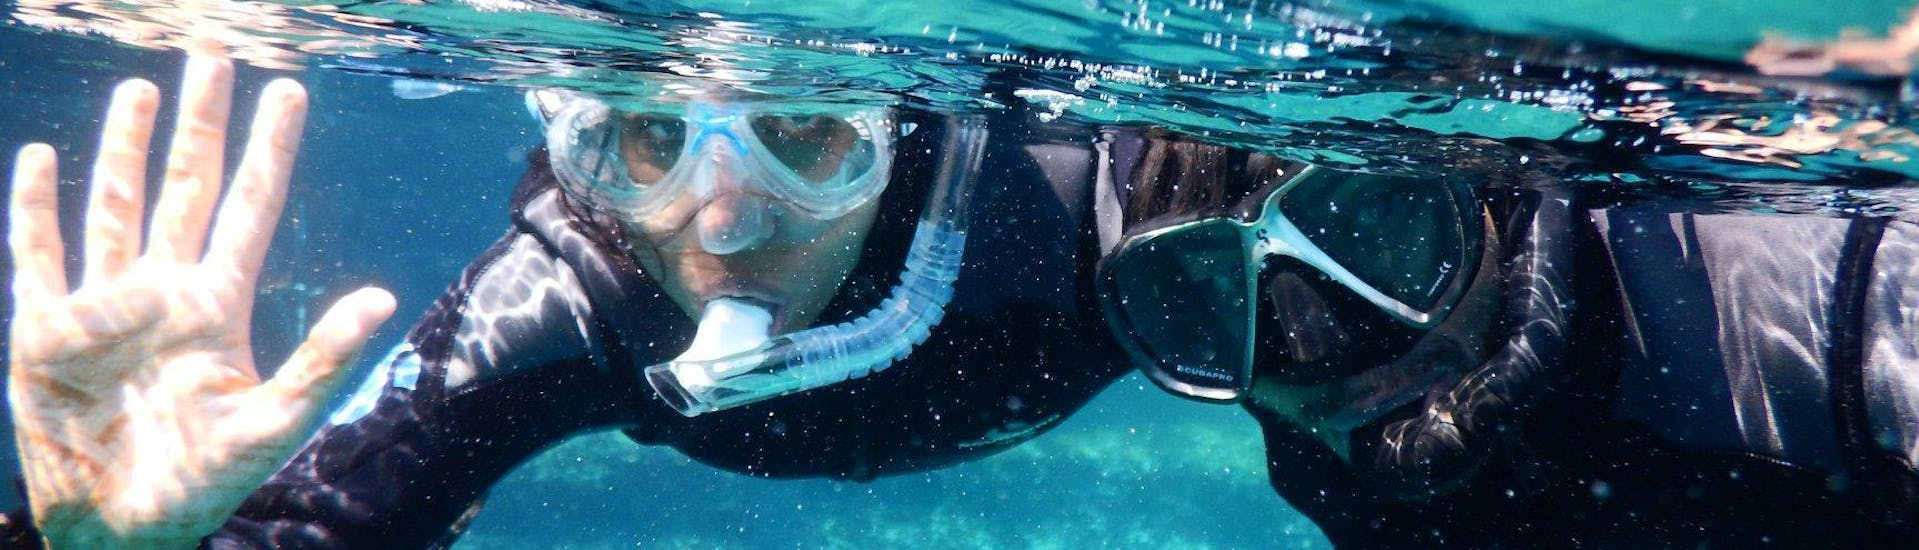 Two people enjoying their Snorkeling Adventure at Mykonos together with an experienced instructor from the Mykonos Diving Center.